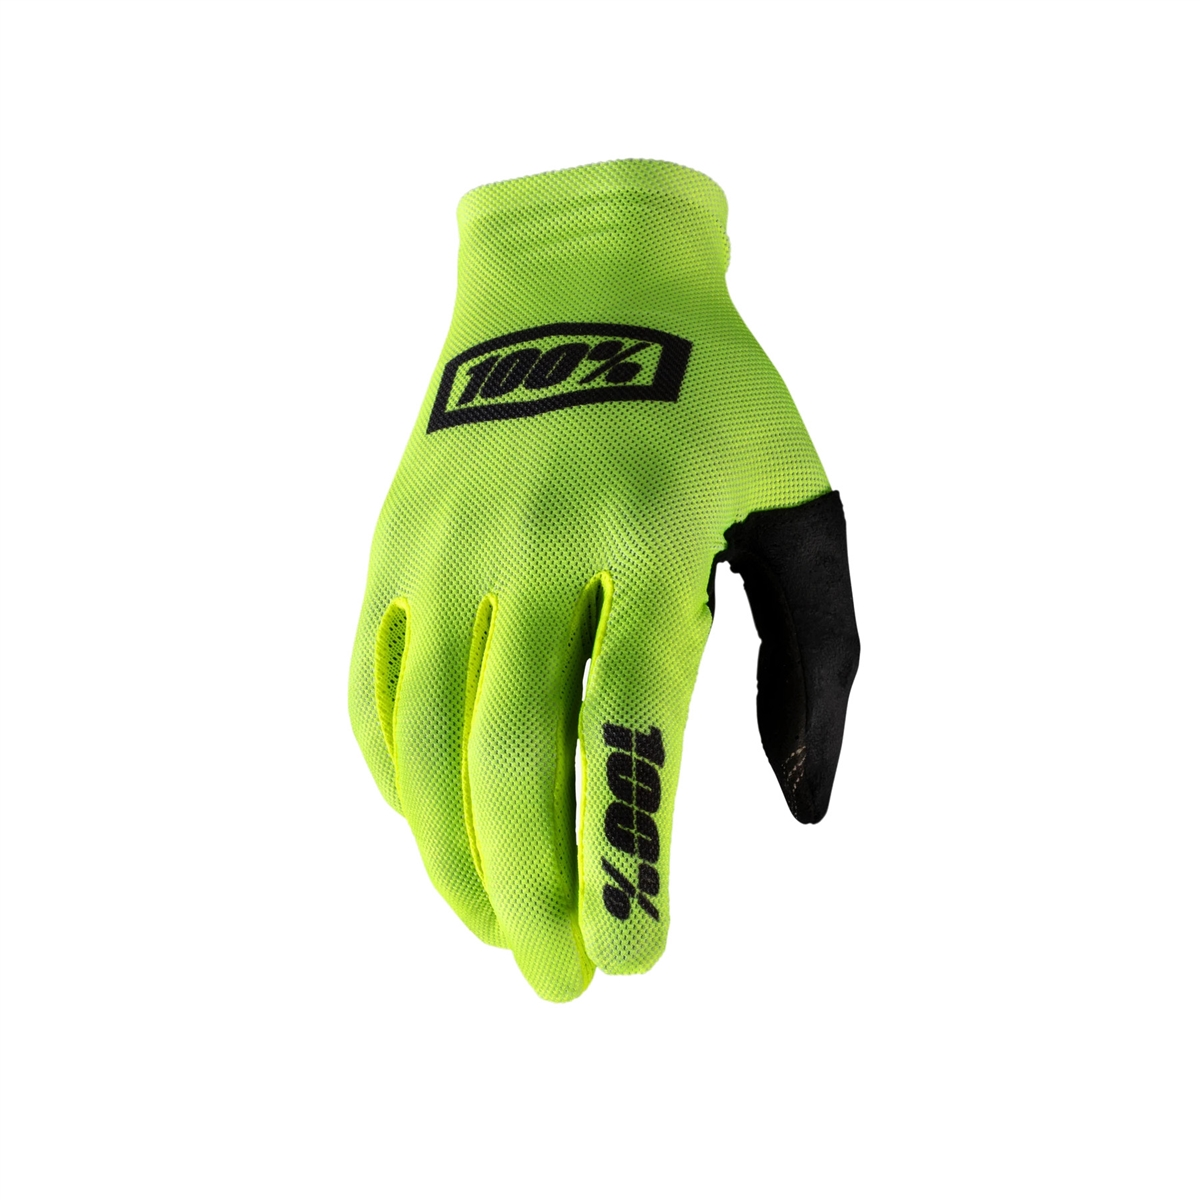 Mtb Gloves Celium Neon Yellow Size S